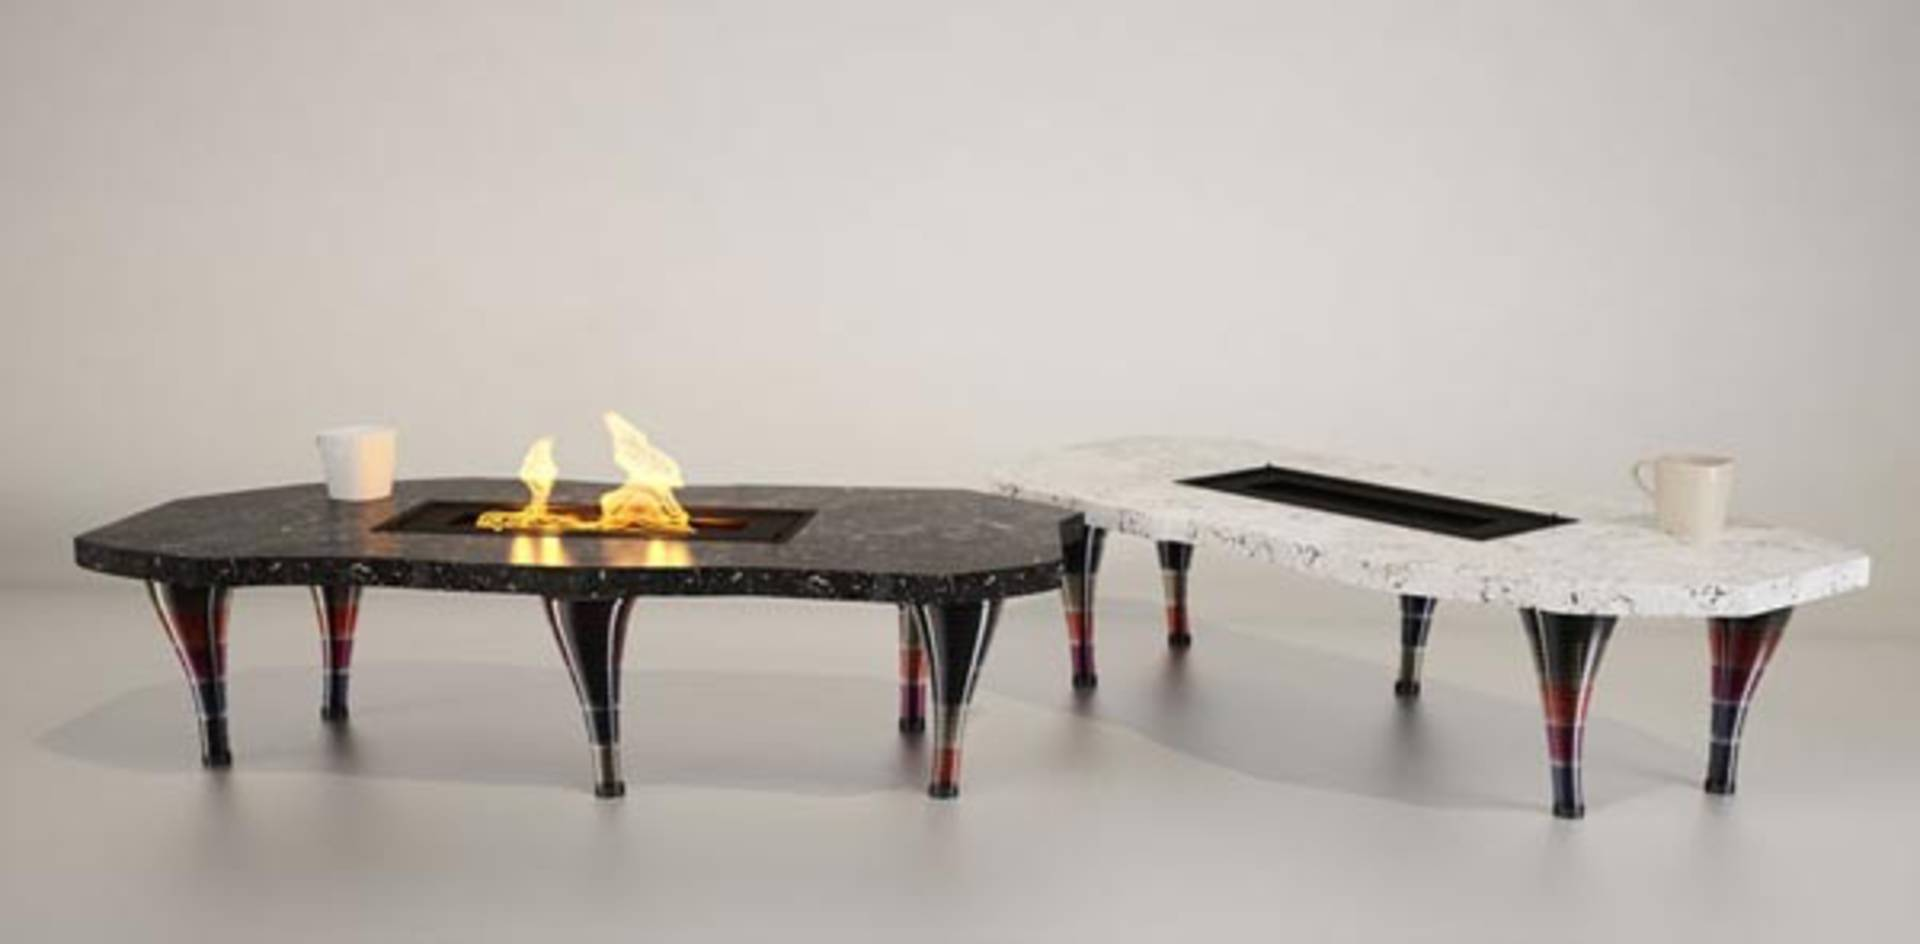 Three Absolutely Diffe Stylish Fireplace Designs By Flying Cavalries